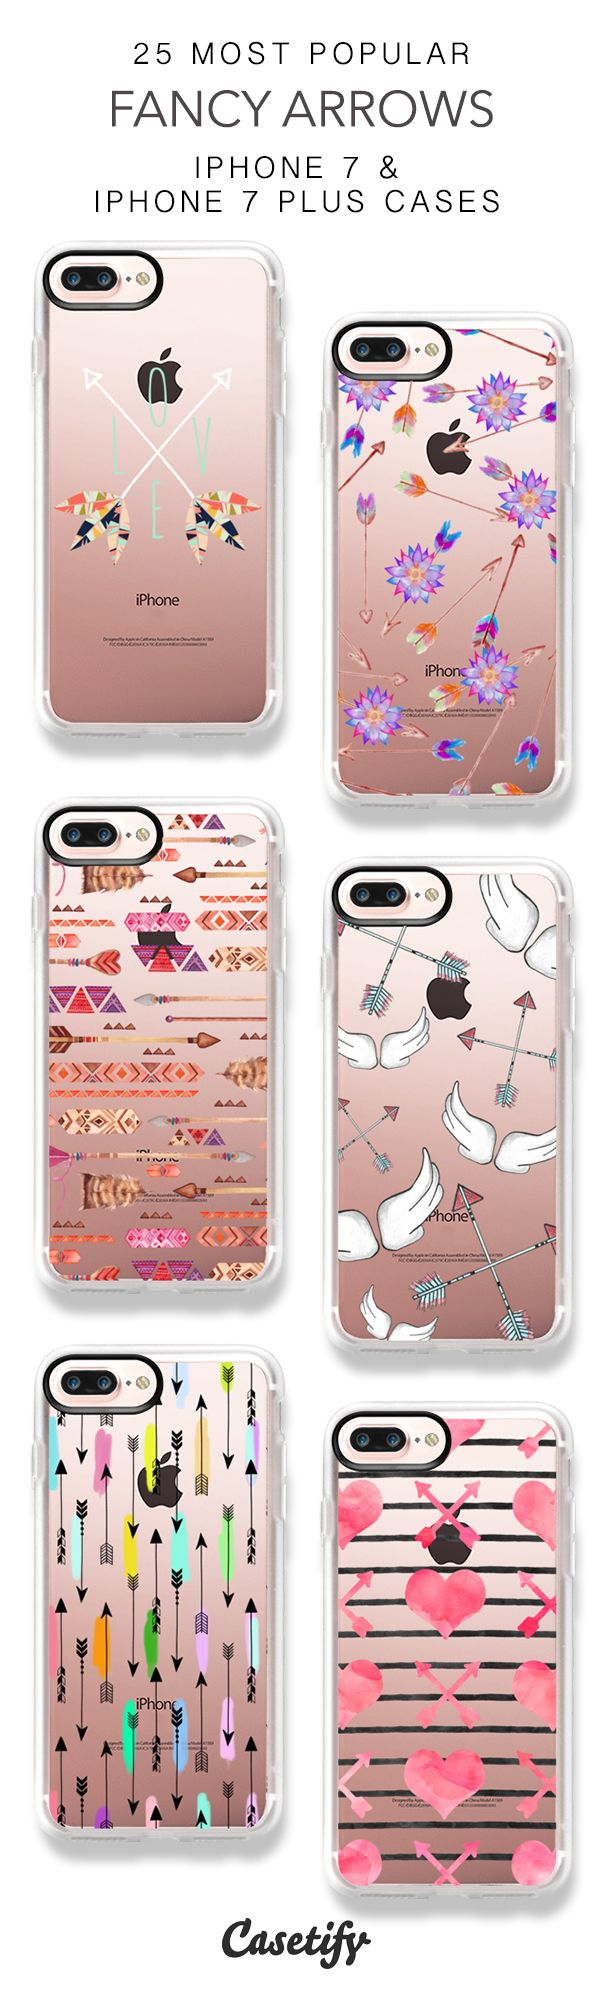 25 Most Popular Fancy Arrows Protective iPhone 7 Cases and iPhone 7 Plus Cases. More Pattern iPhone case here > https://www.casetify.com/collections/top_100_designs#/?vc=Q9FQq2pHf6